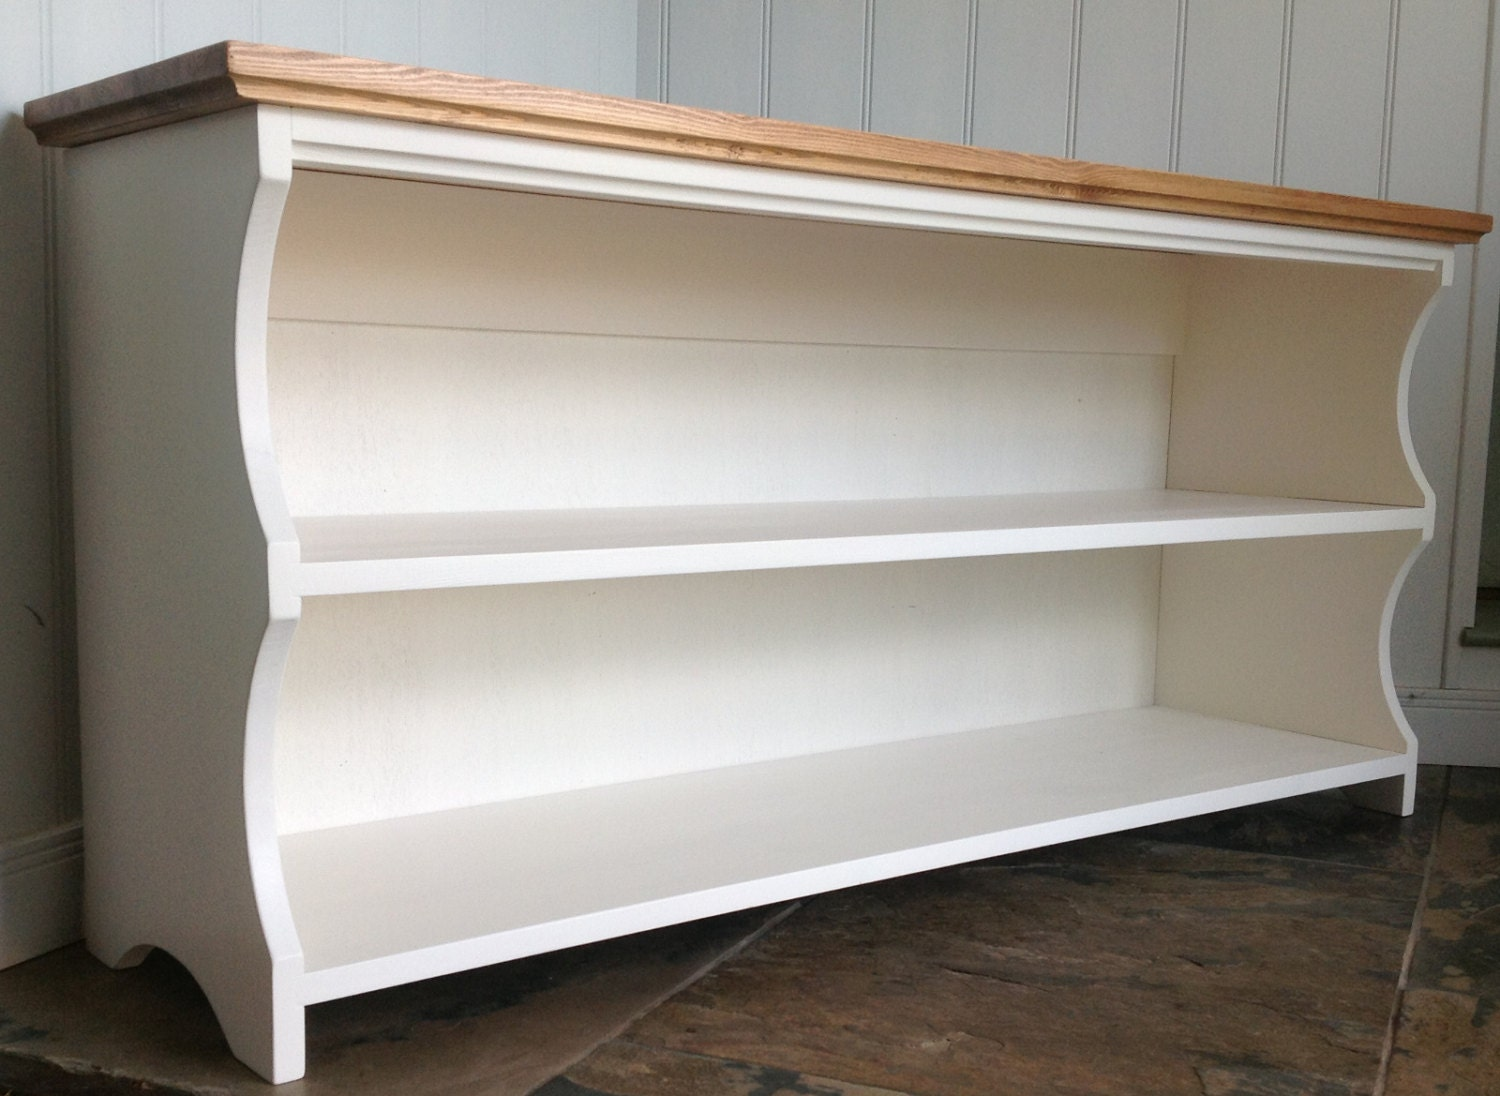 Hall Shoe Bench And Shoe Rack With Storage Shelves In Antique